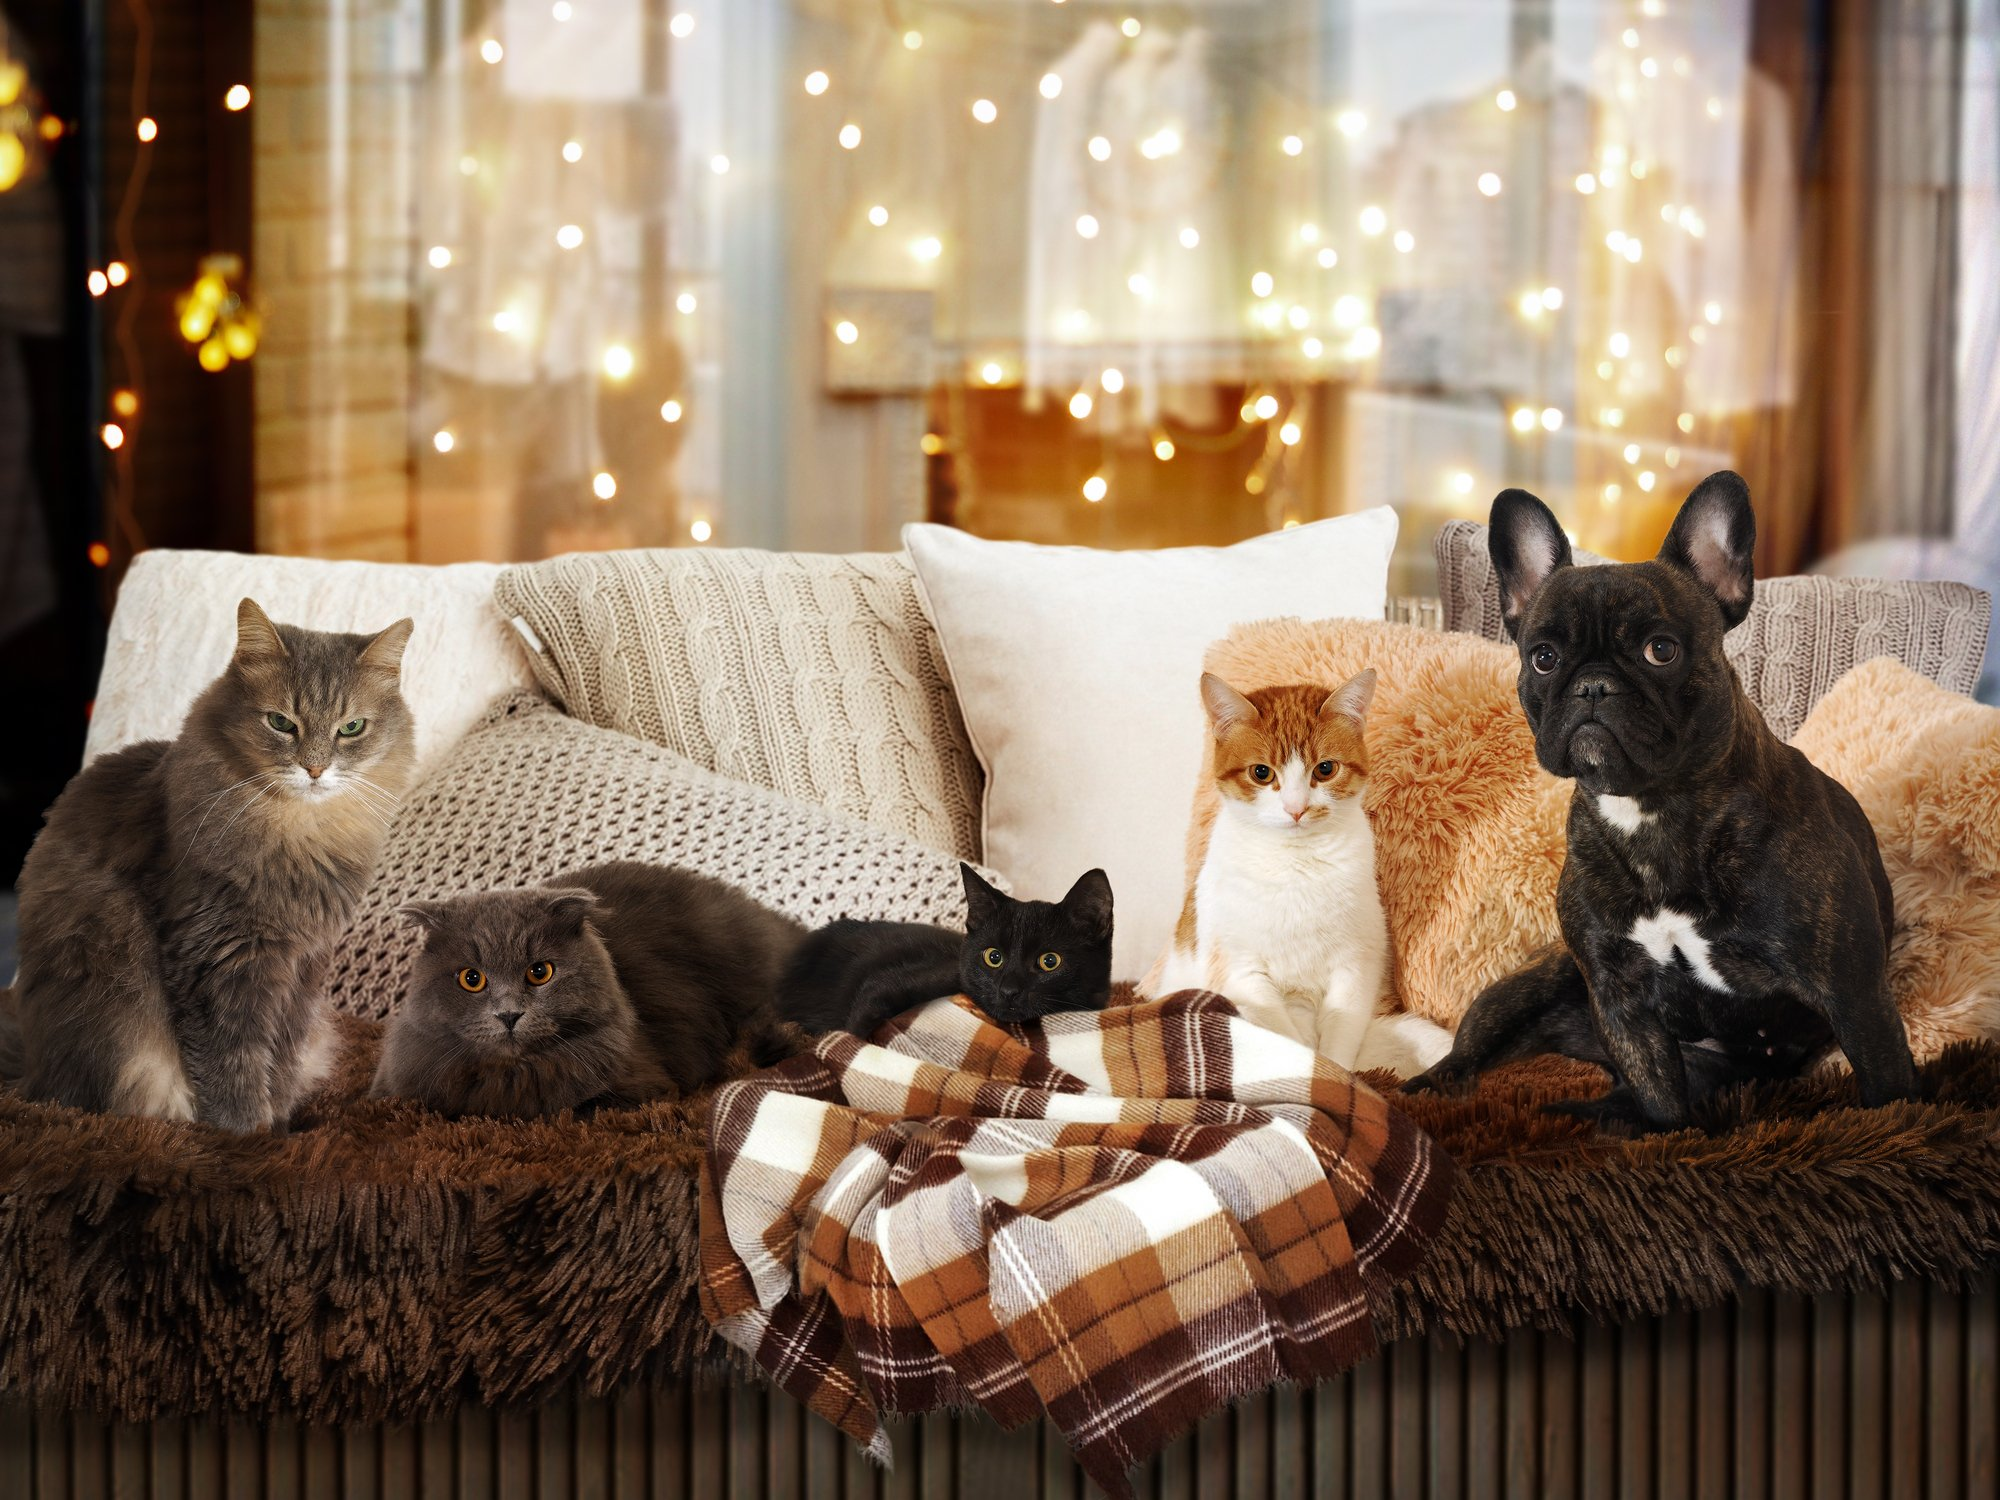 Cats and a dog in a festive interior. Lots of Pets